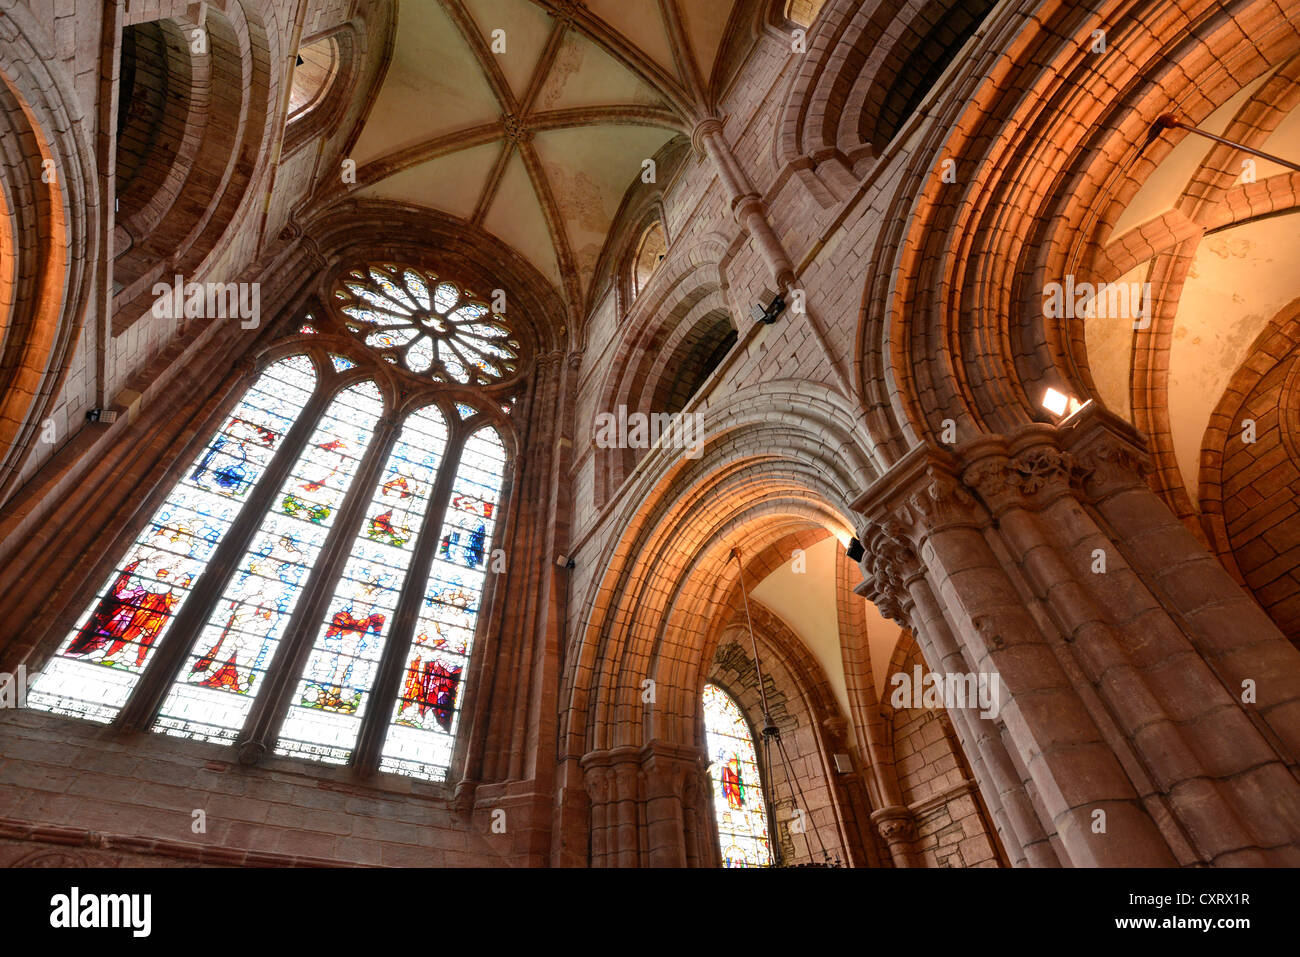 Interior view, large window with a glass mosaic, church window, and ceiling of St. Magnus Cathedral, Orkney Islands, - Stock Image